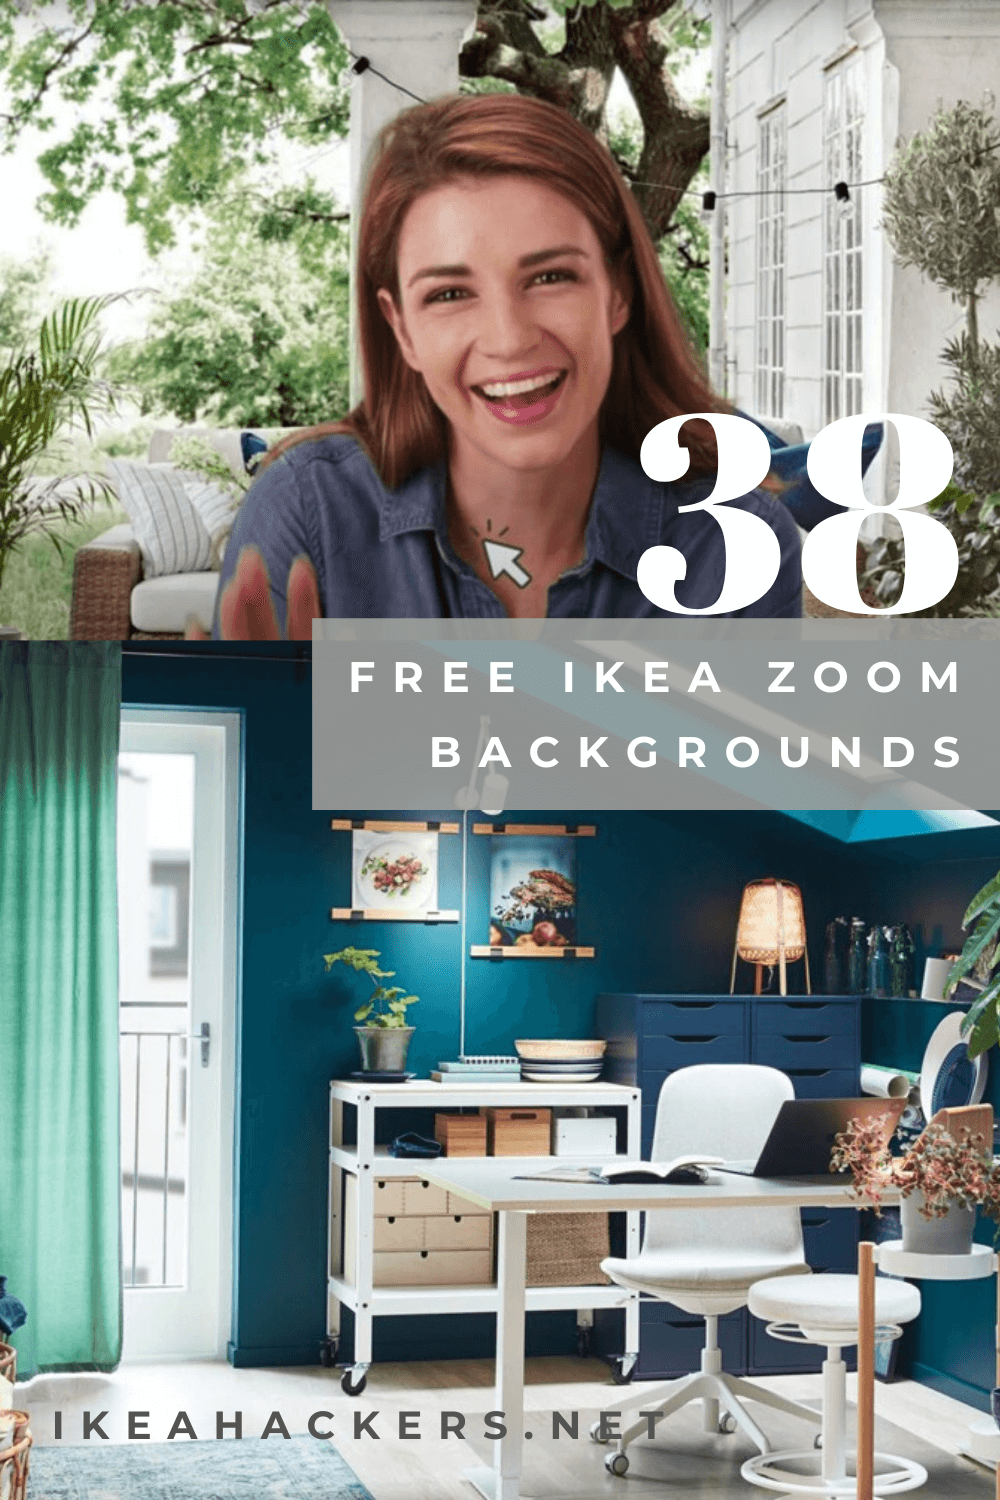 Ikea Free Backgrounds For More Stylish Zoom Calls Give Your Home Office A Virtual Makeover With These Free Zoom Zoom Call Virtual Makeover Office Background